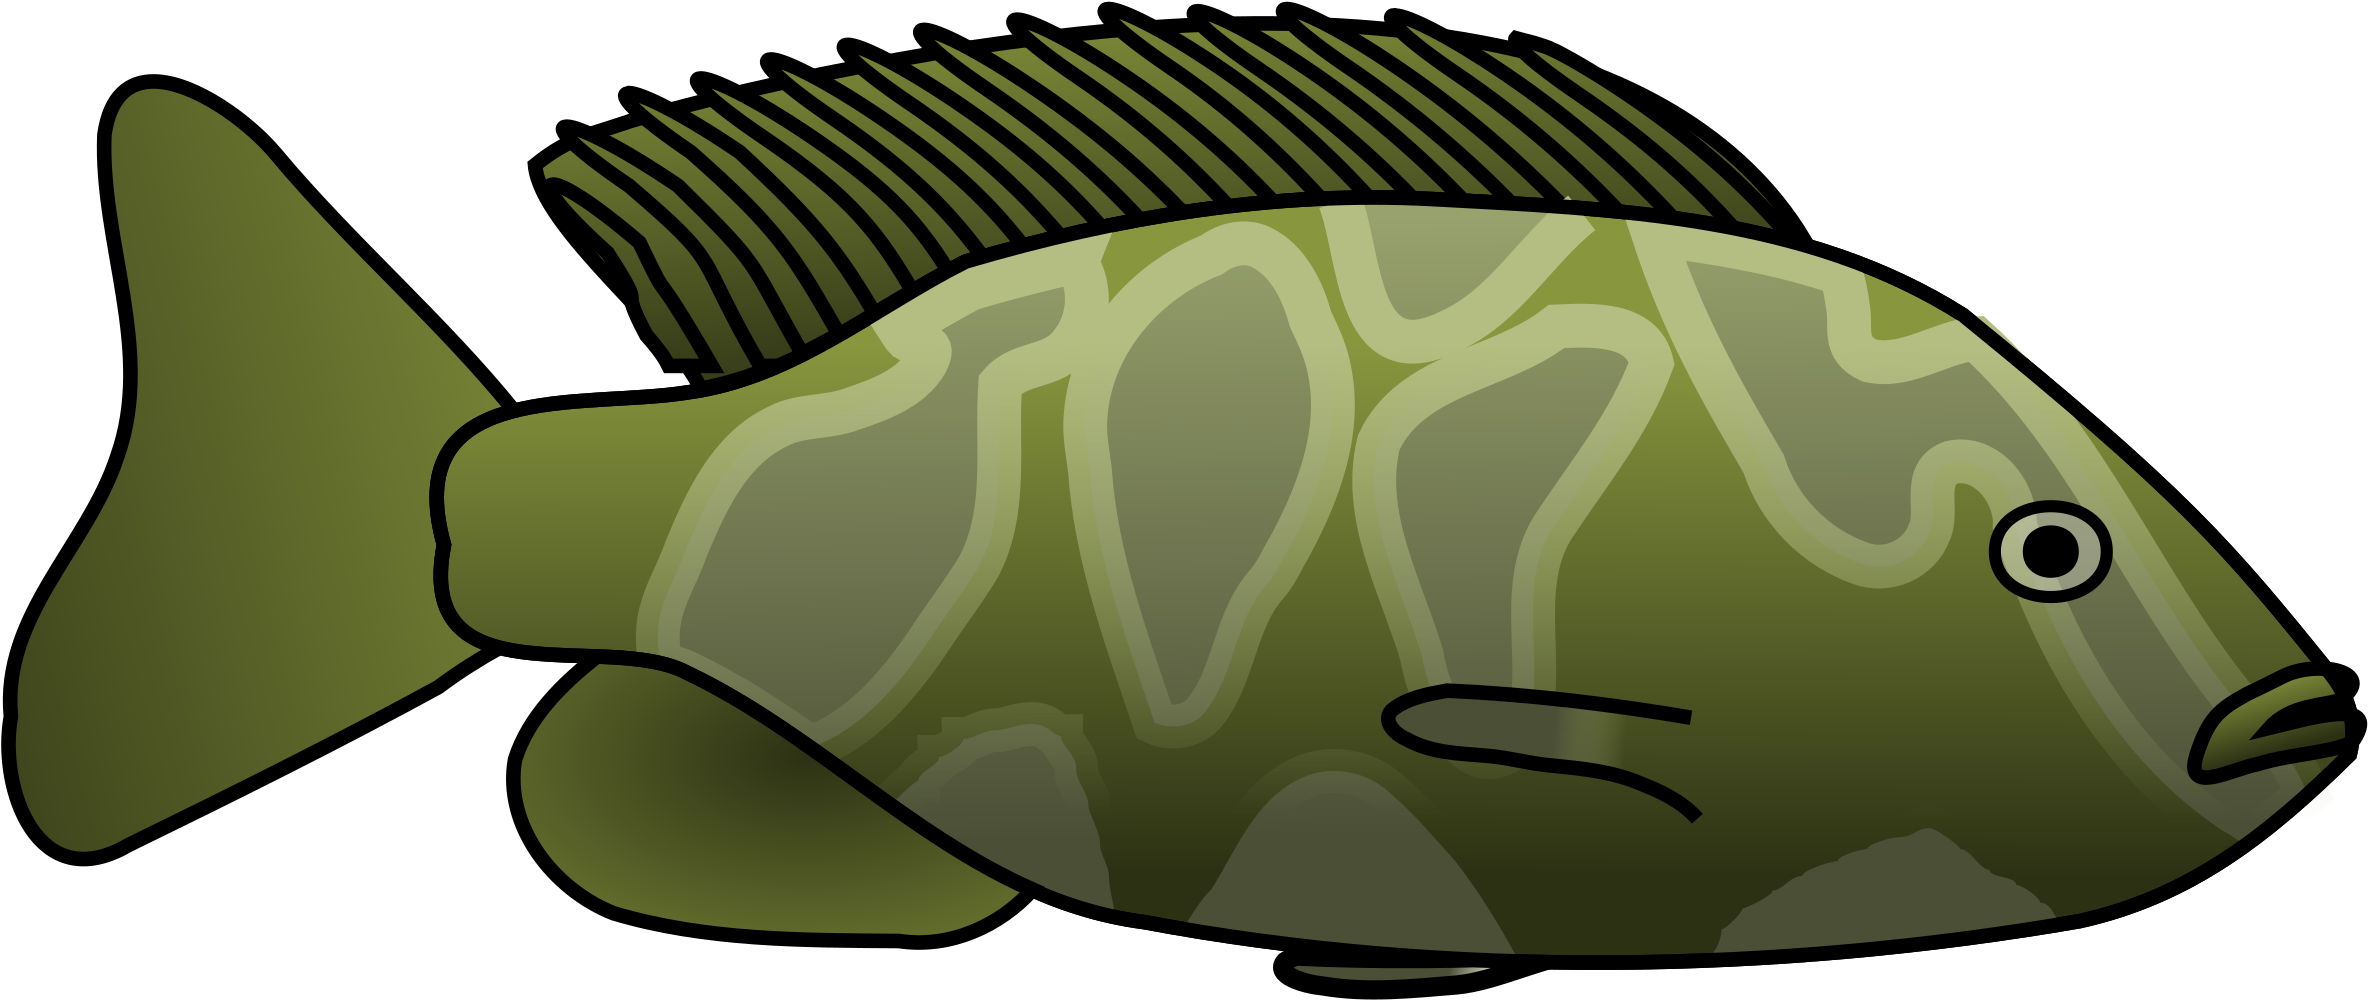 Fishing clip art green. Lake clipart fish clipart